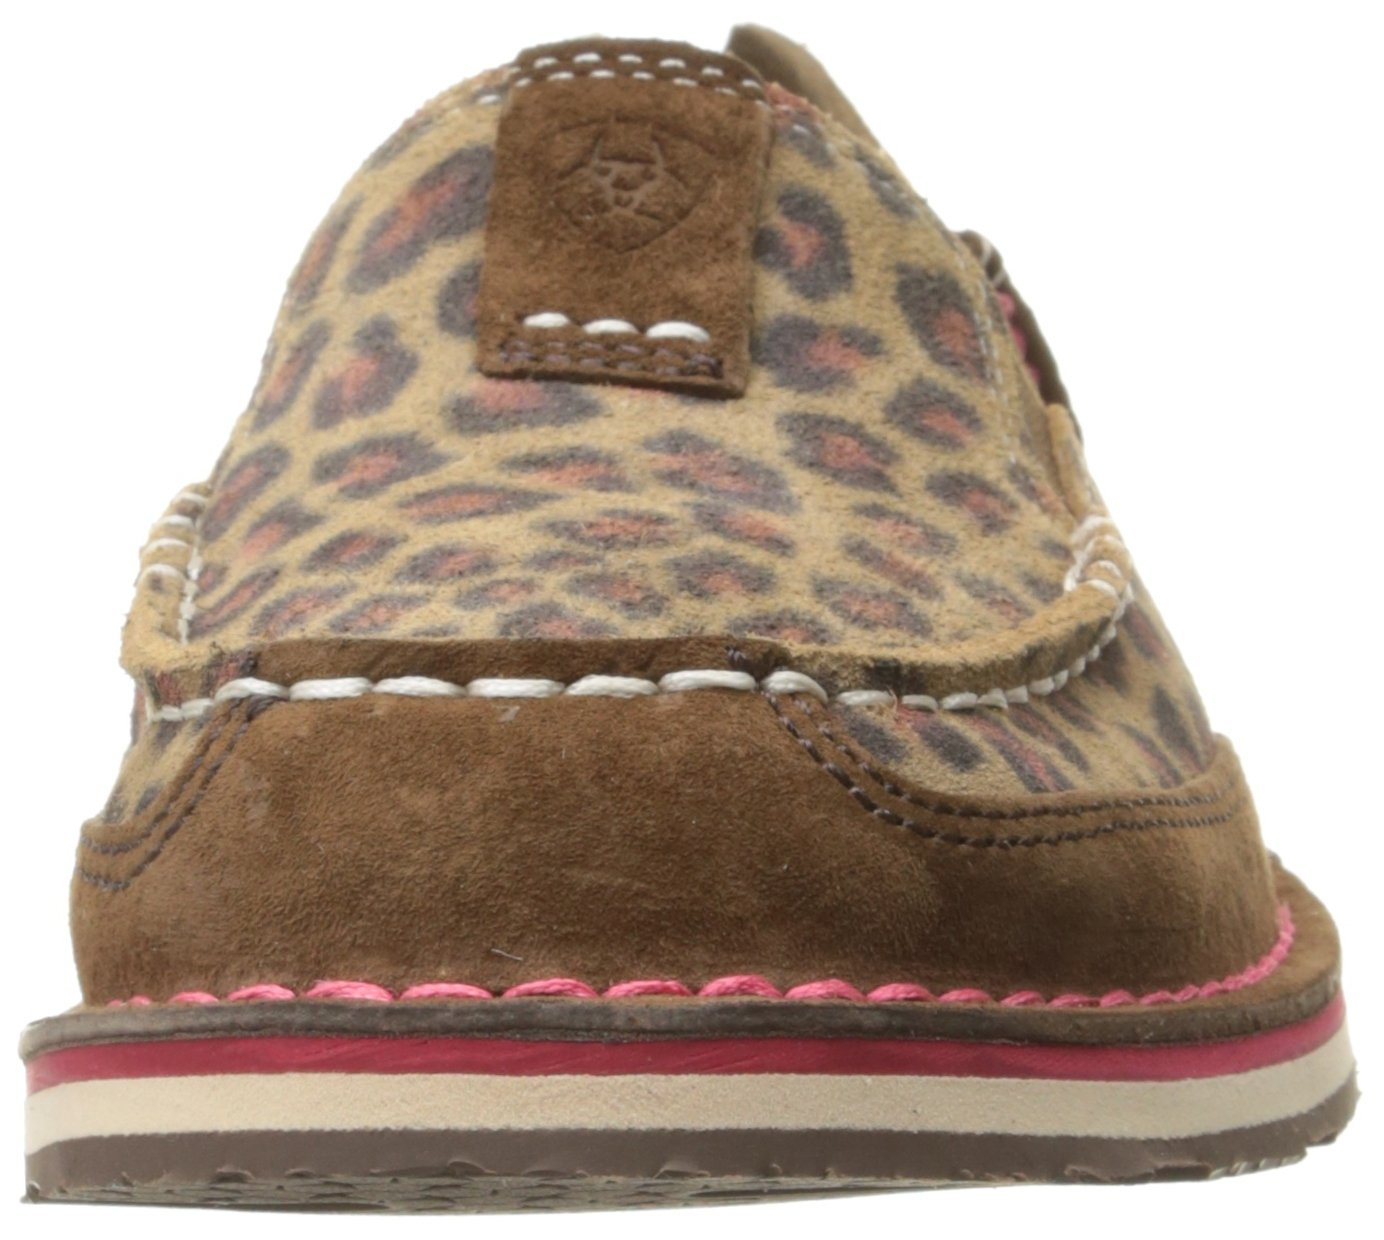 Ariat Women's Cruiser Slip-on Shoe Earth/Cheetah B014WBP5SO 7.5 B(M) US|Dark Earth/Cheetah Shoe 07c82d